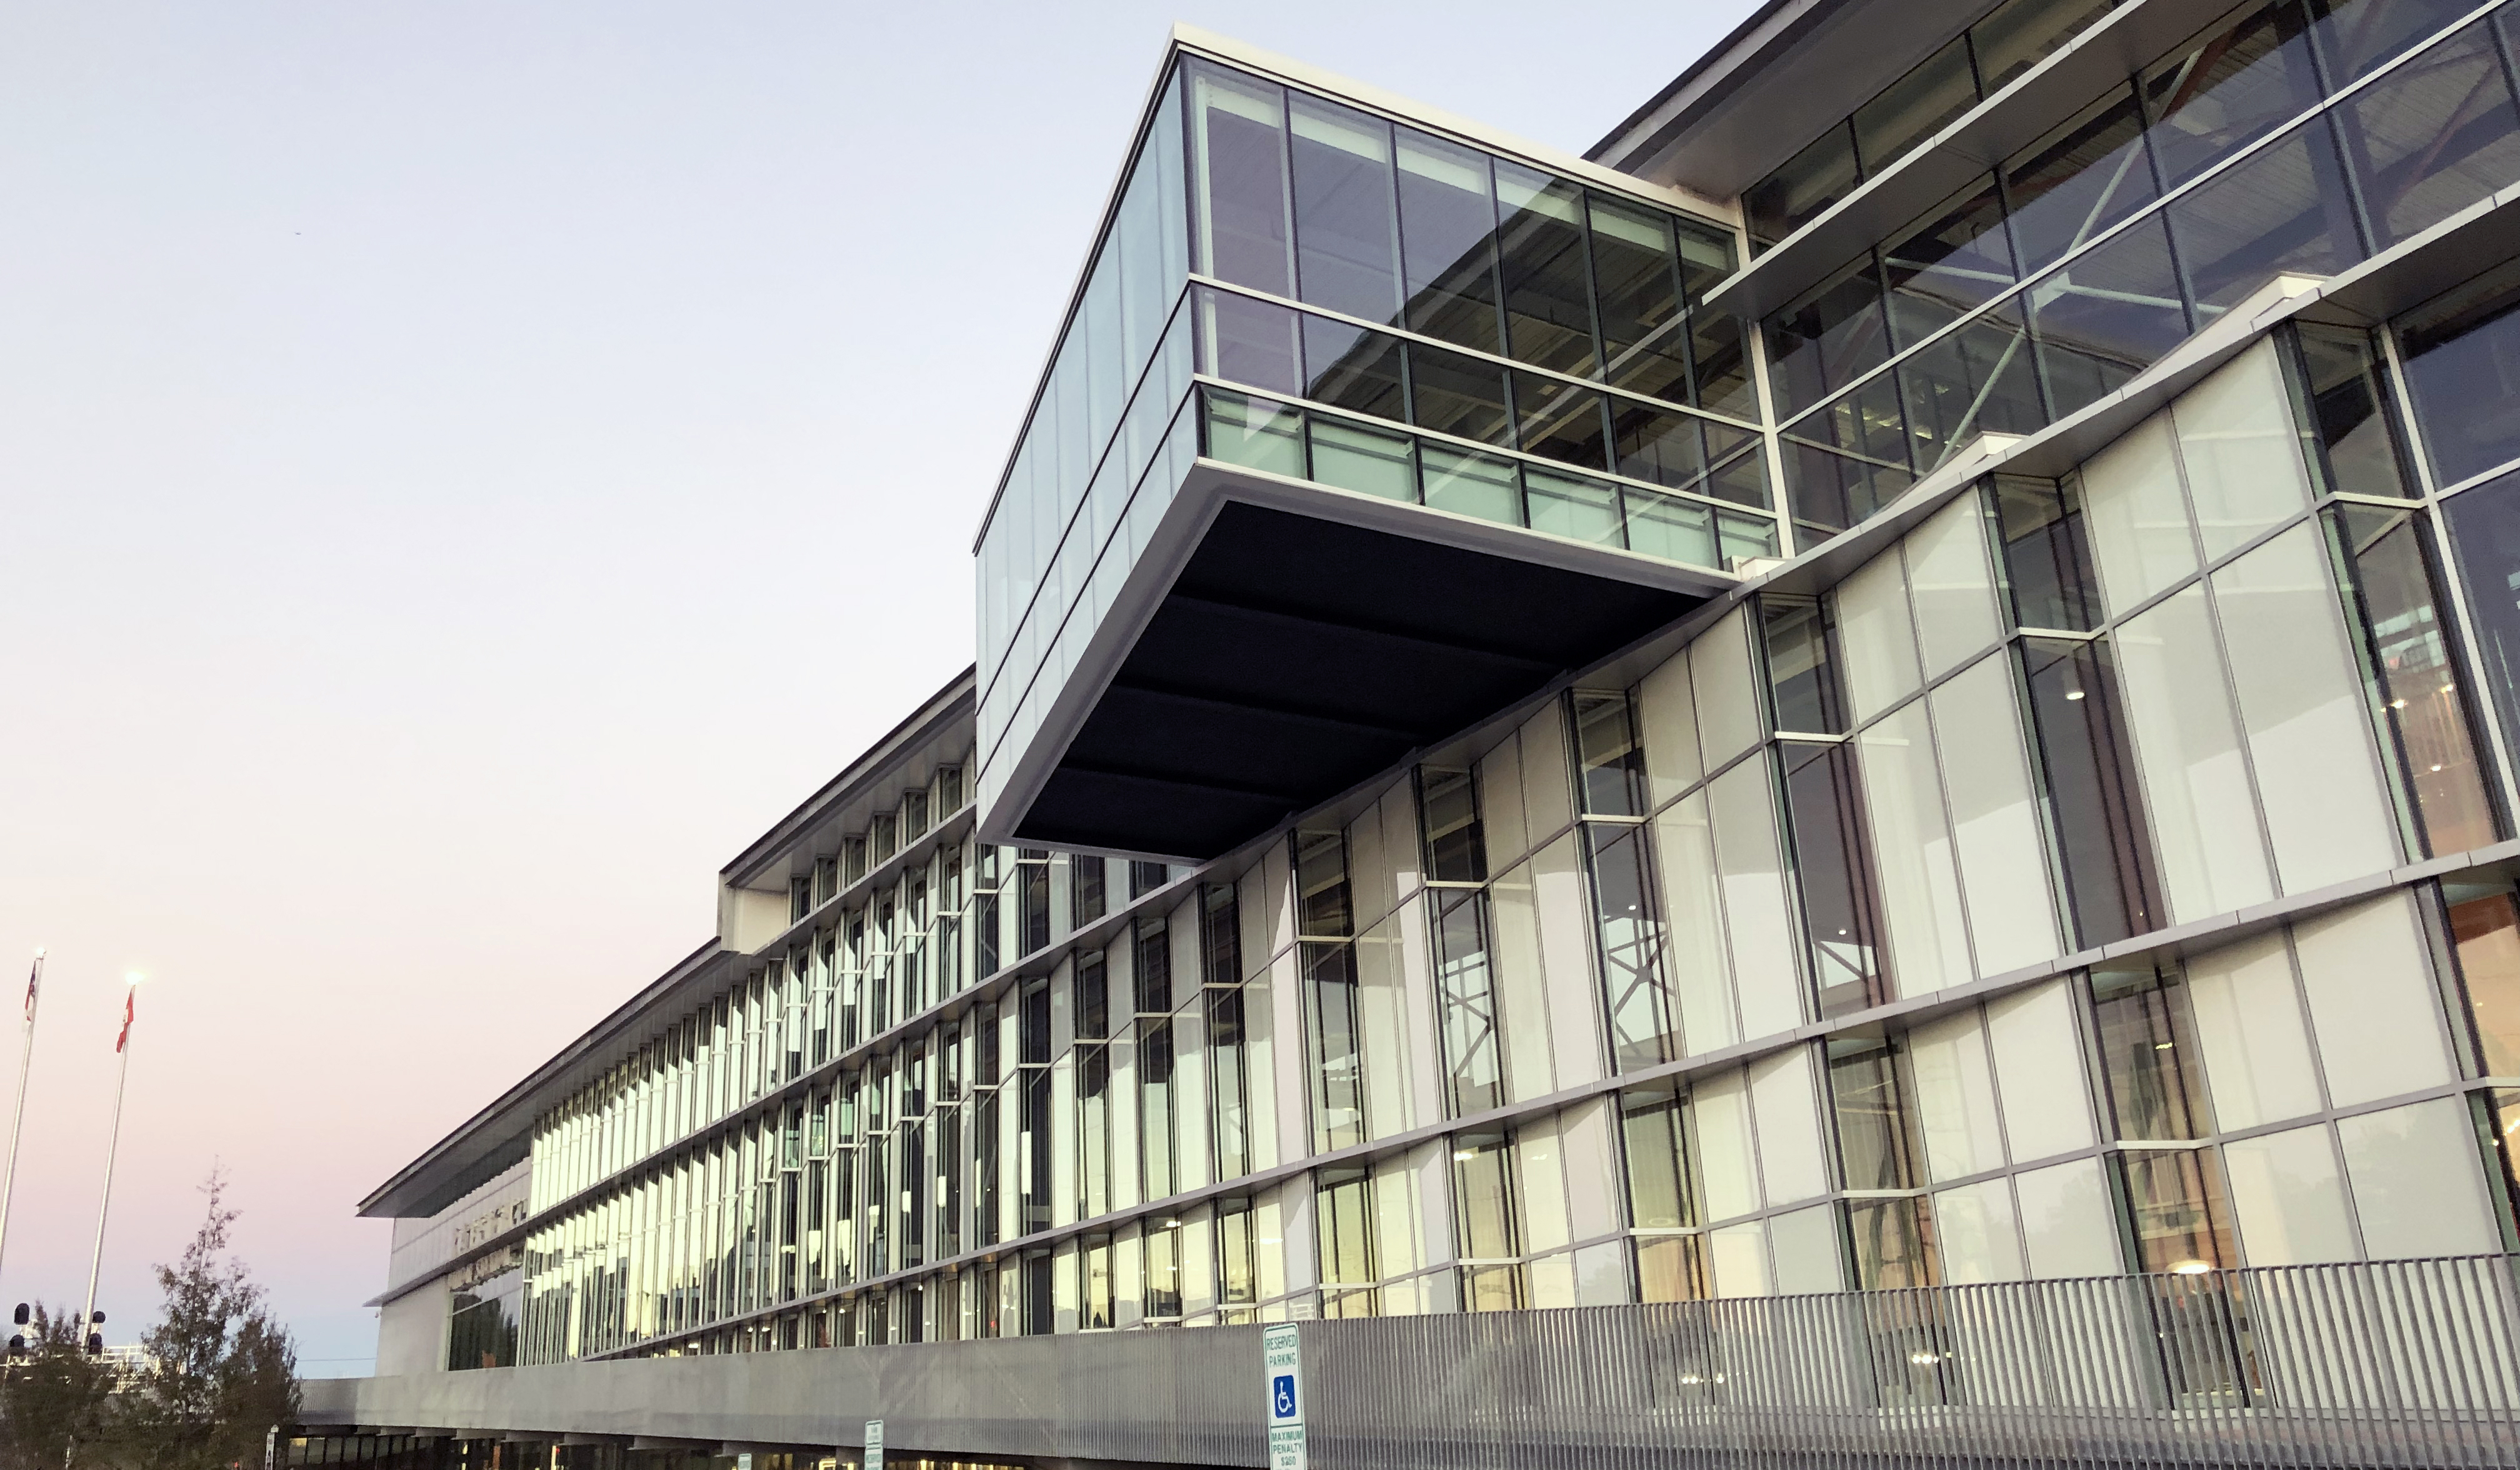 ClearShade Exterior Glazing | visible light transmission, diffused daylighting, solar heat gain control | Rayleigh Union Station, NC